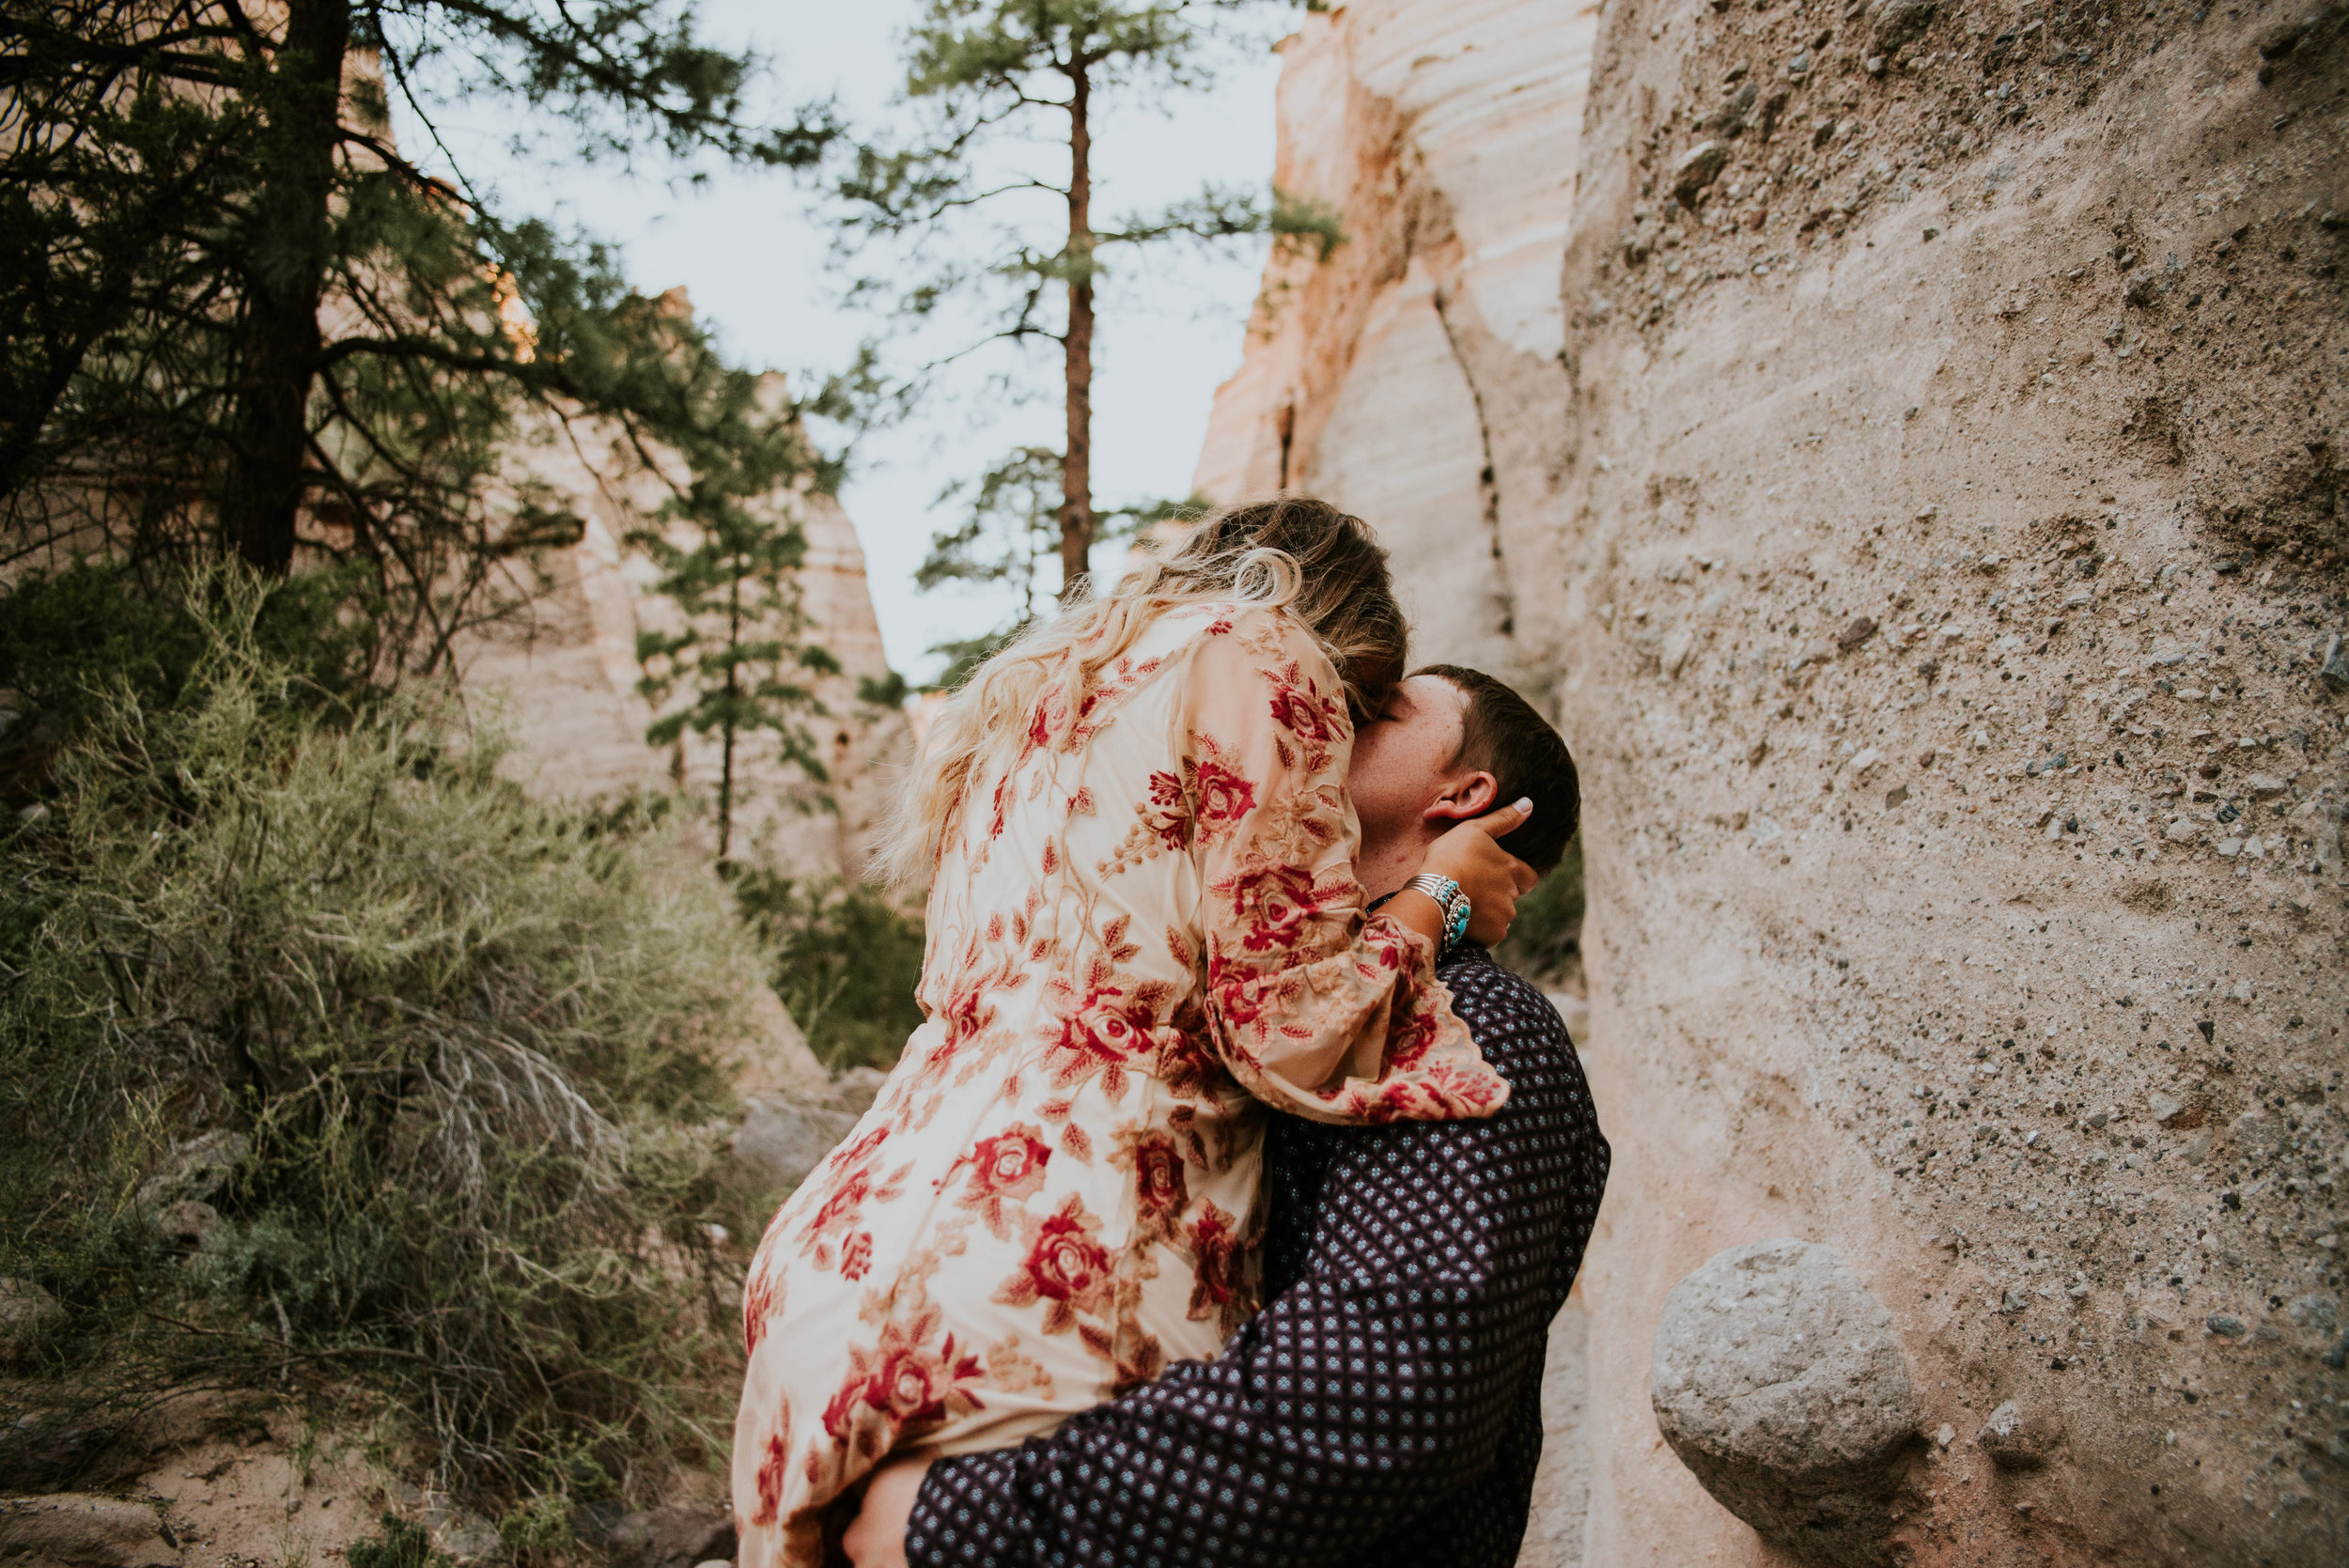 Miss. Miller's Photography | New Mexico Wedding Photographer | Colorado Wedding Photographer | Red Floral Dress | Desert Engagement Photos | Engagement Photo Outfits | Engagement Photos Country | Engagement Photo Ideas |